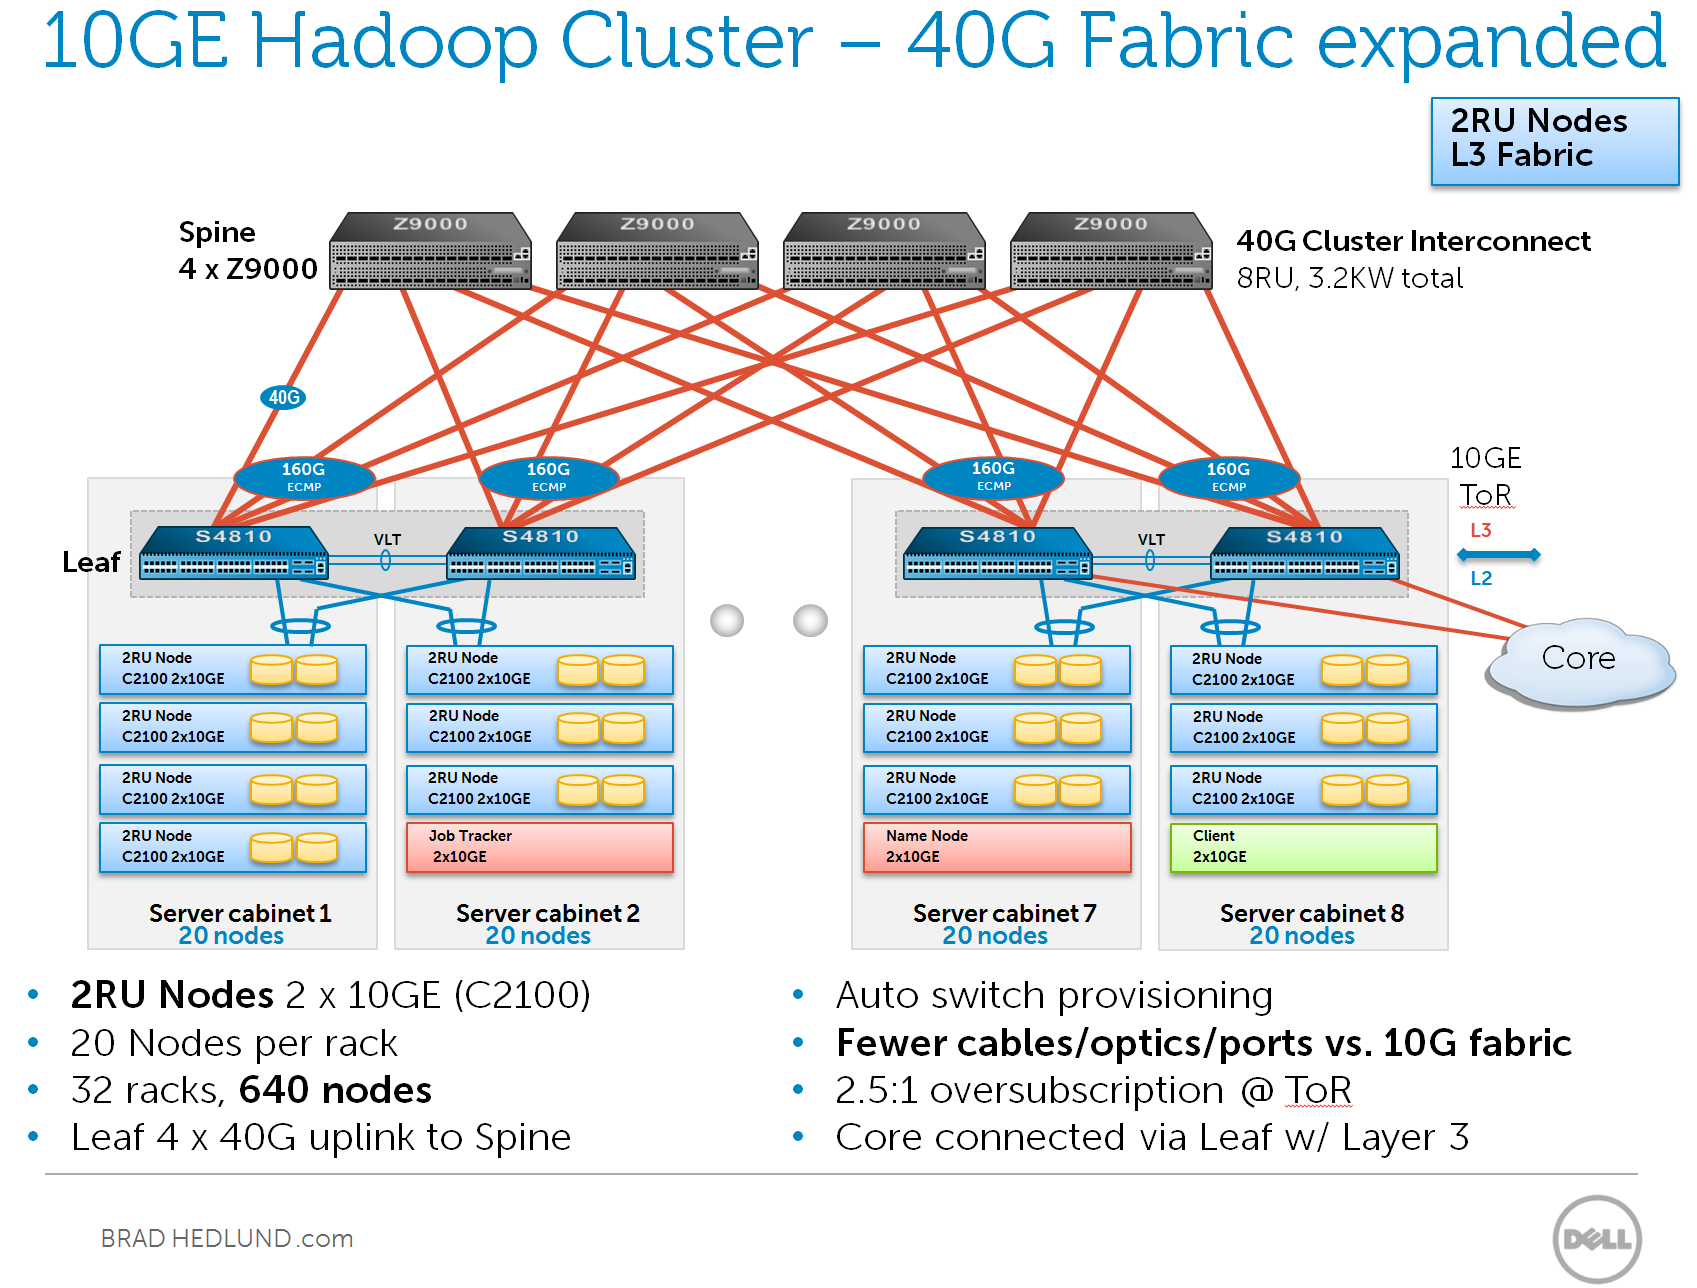 Considering 10GE Hadoop clusters and the network